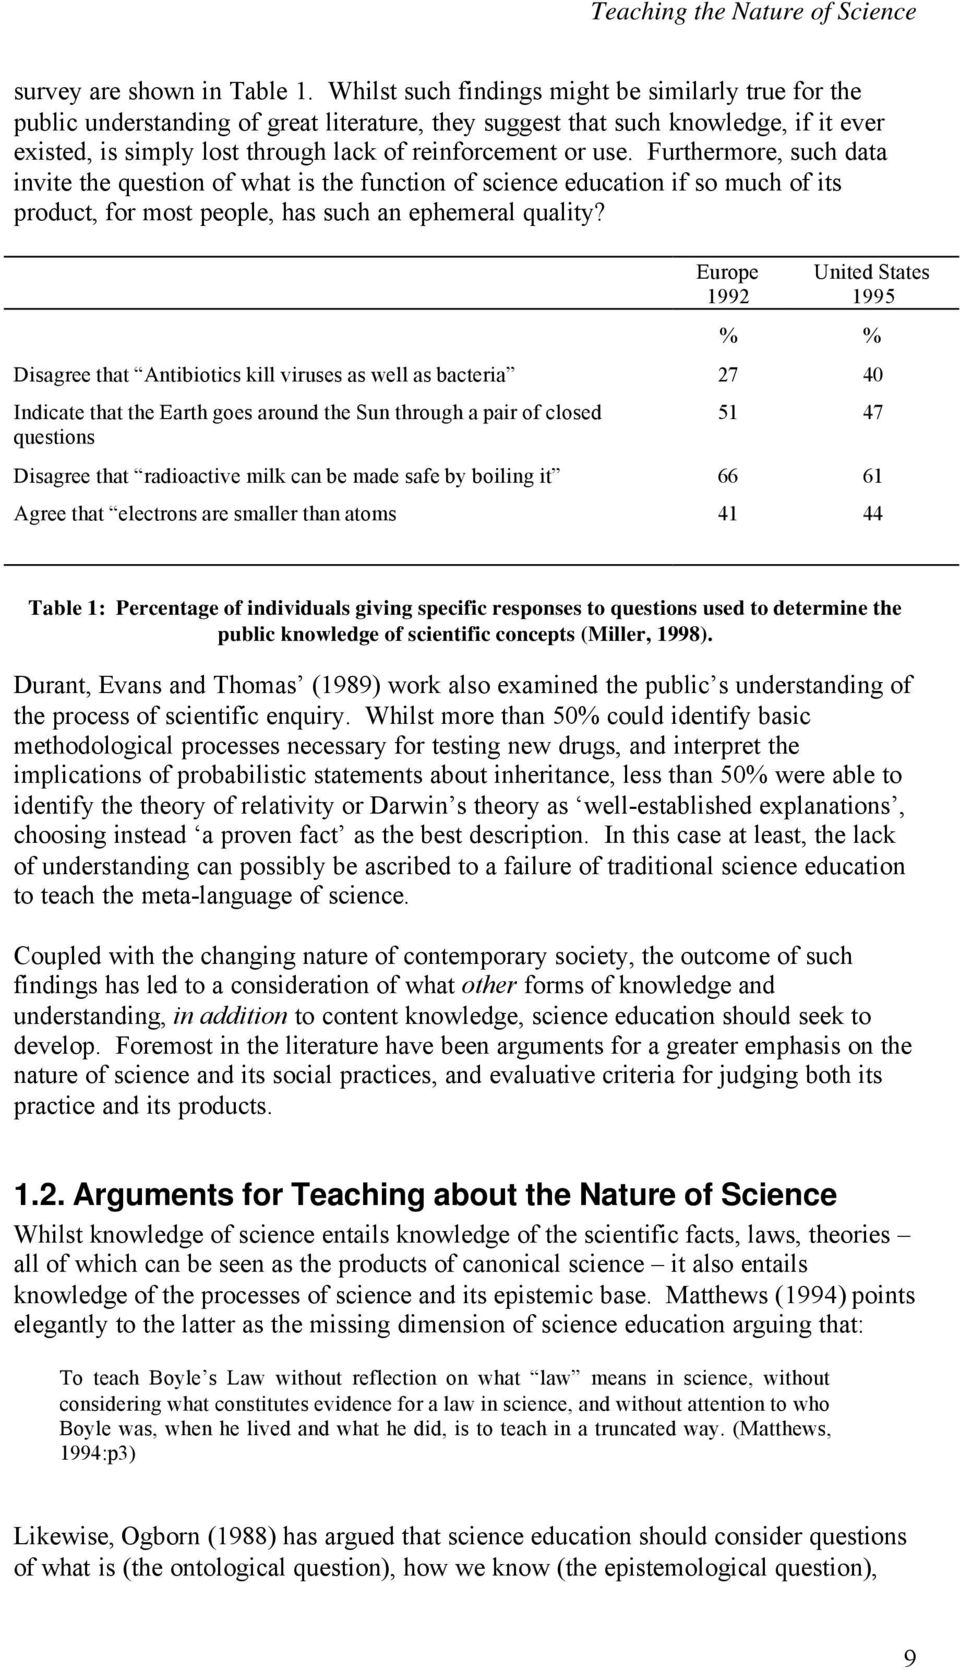 use. Furthermore, such data invite the question of what is the function of science education if so much of its product, for most people, has such an ephemeral quality?